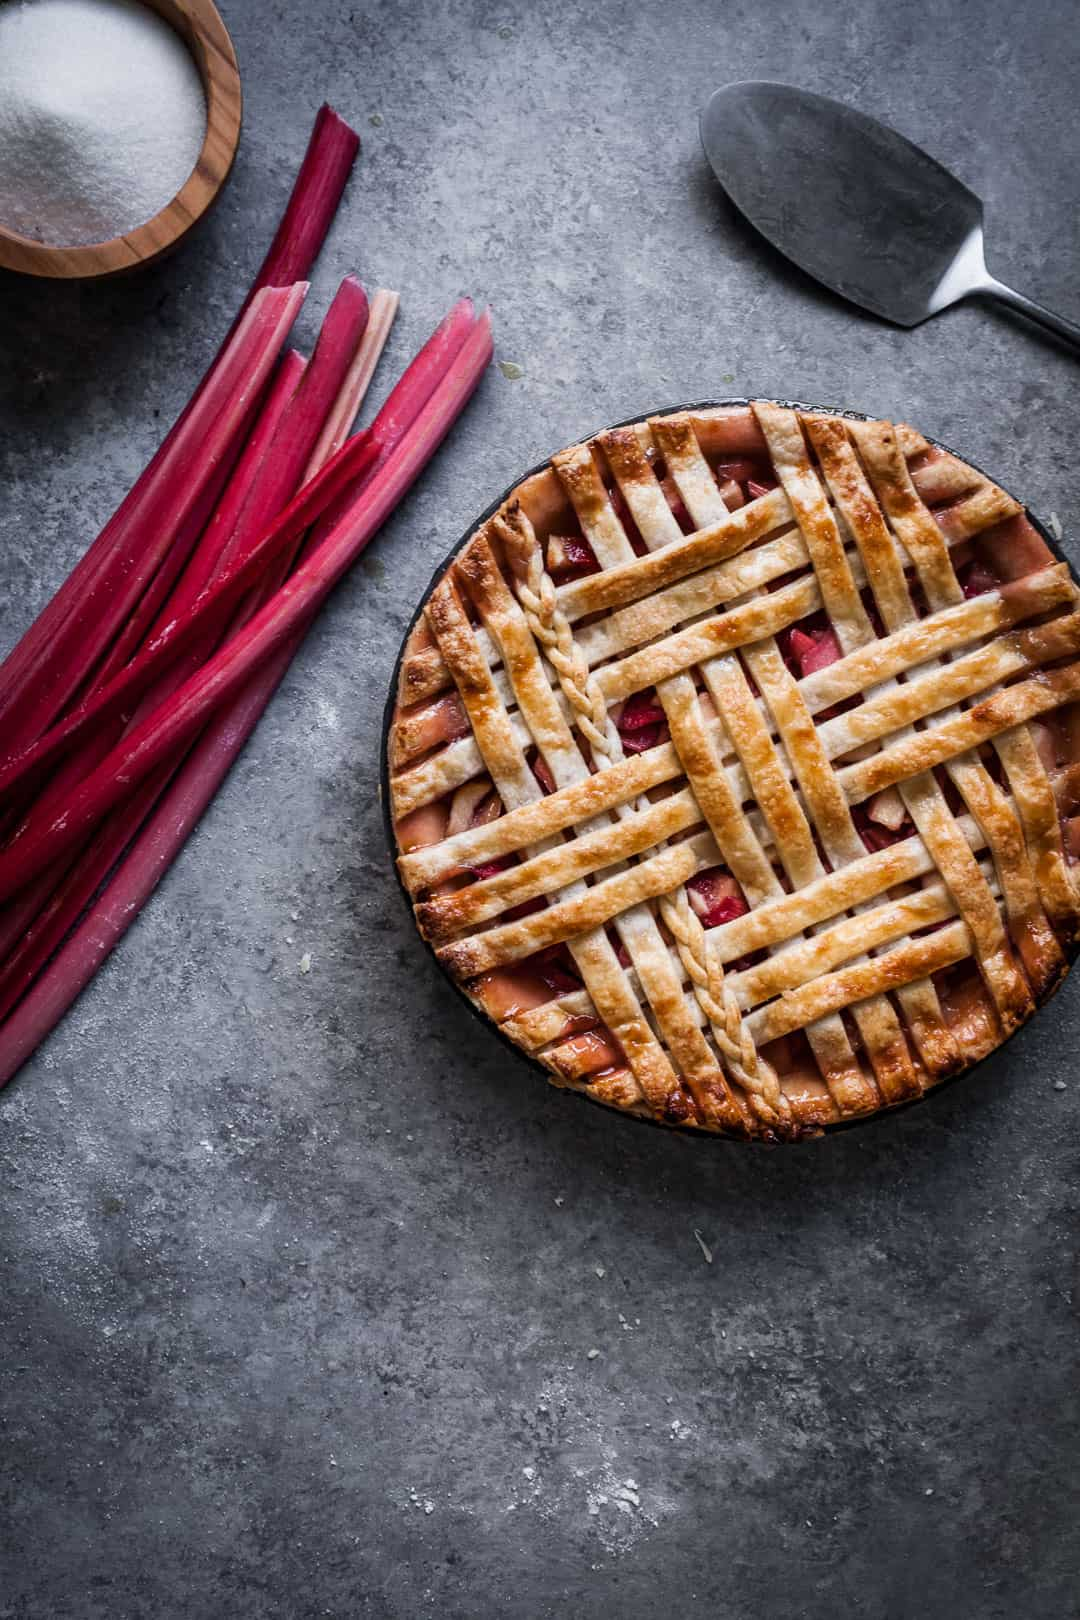 close up on grey background of baked rhubarb apple pie with ginger and lemongrass rhubarb stalks and pie server nearby